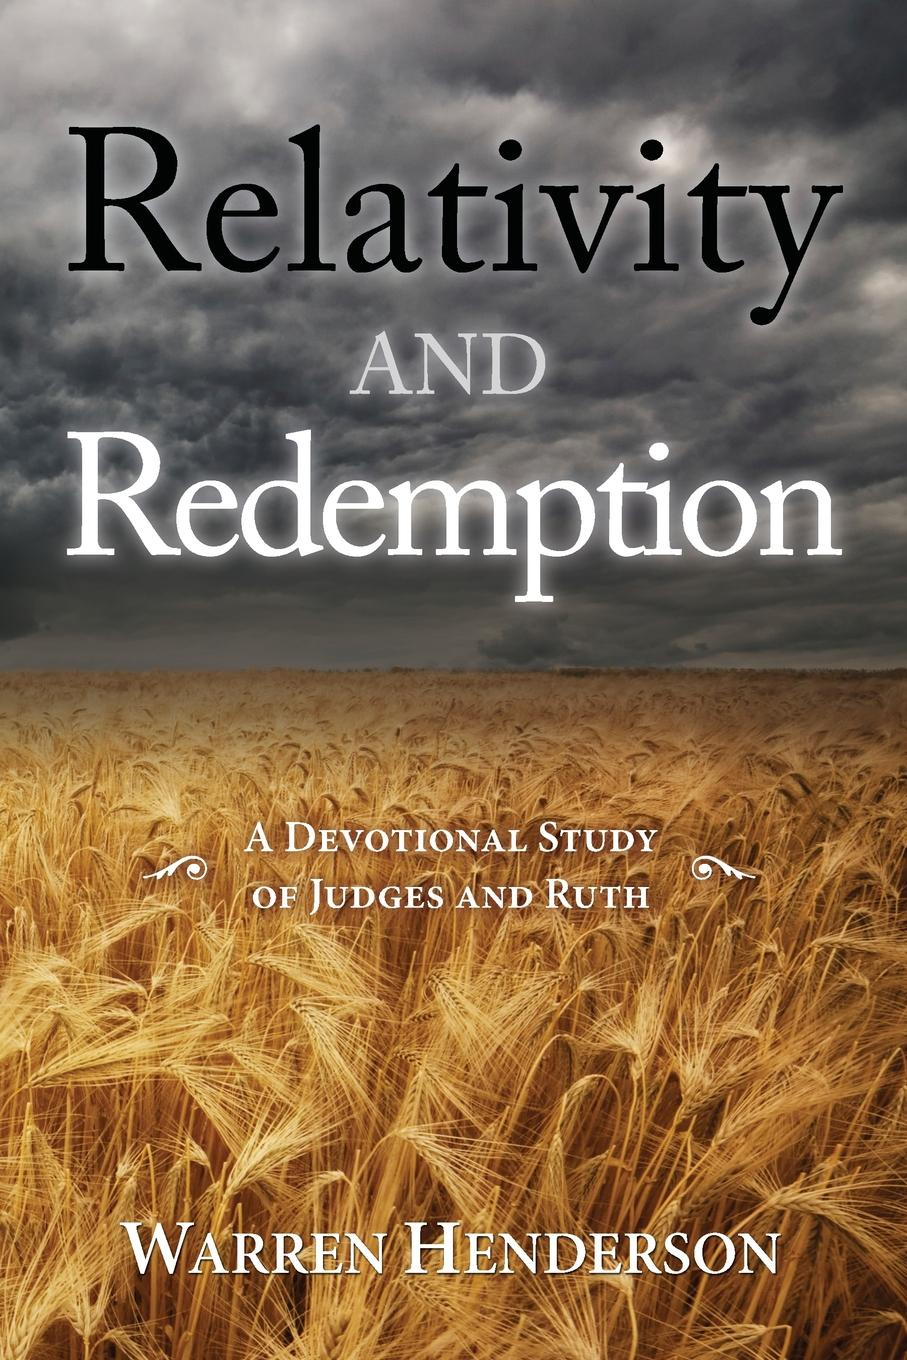 Warren A Henderson Relativity and Redemption - A Devotional Study of Judges and Ruth ruth scofield wonders of the heart